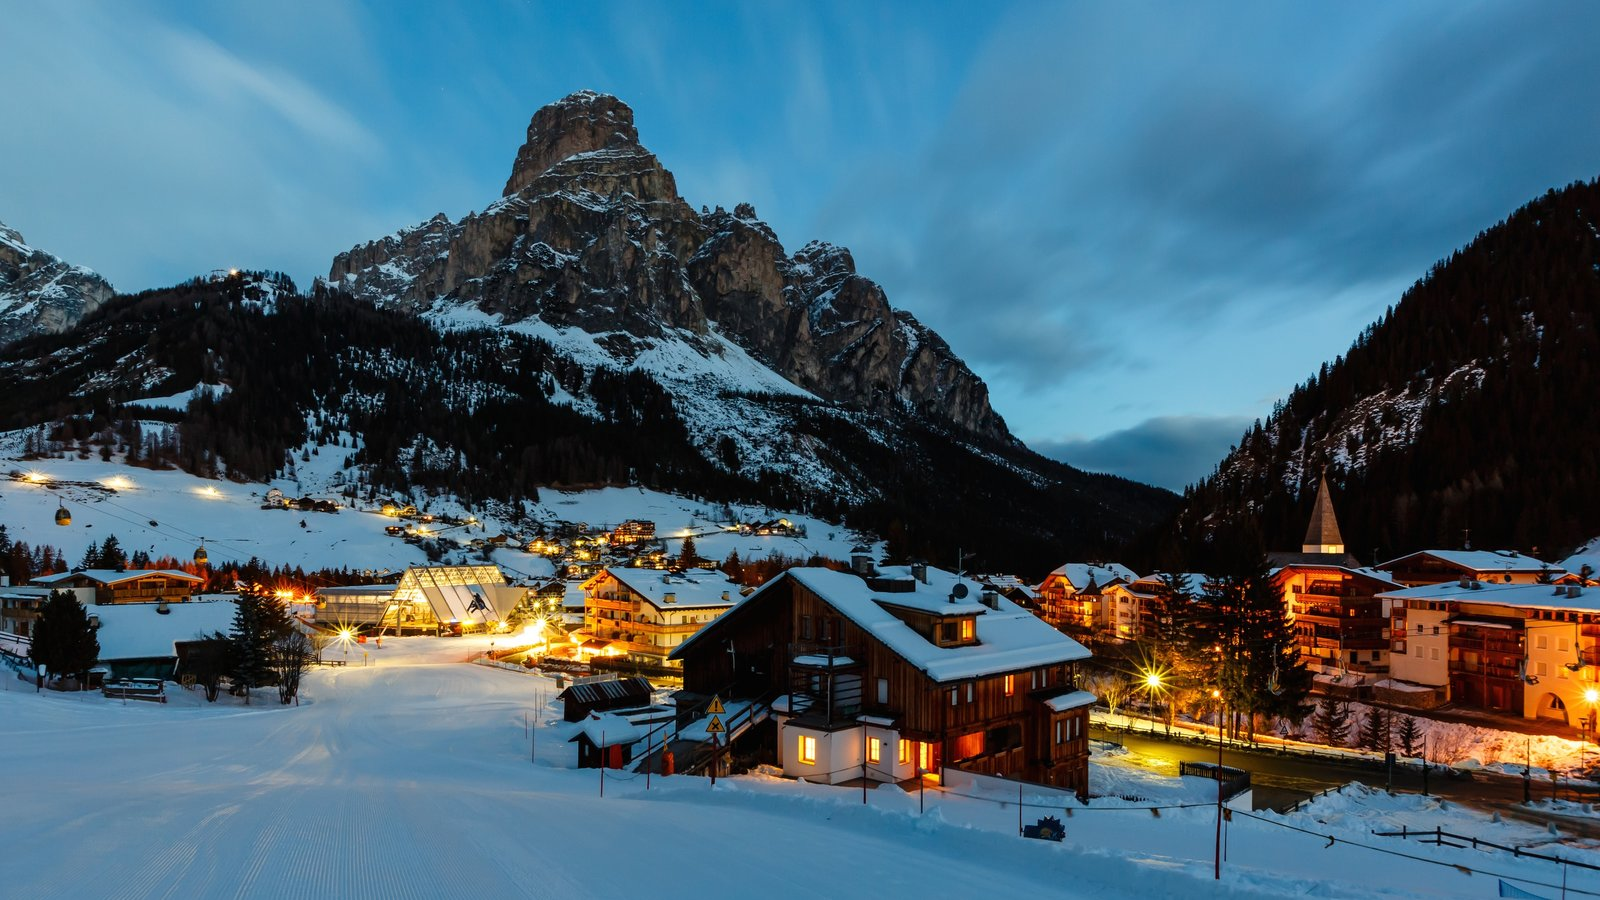 Trentino which includes a small town or village, landscape views and snow